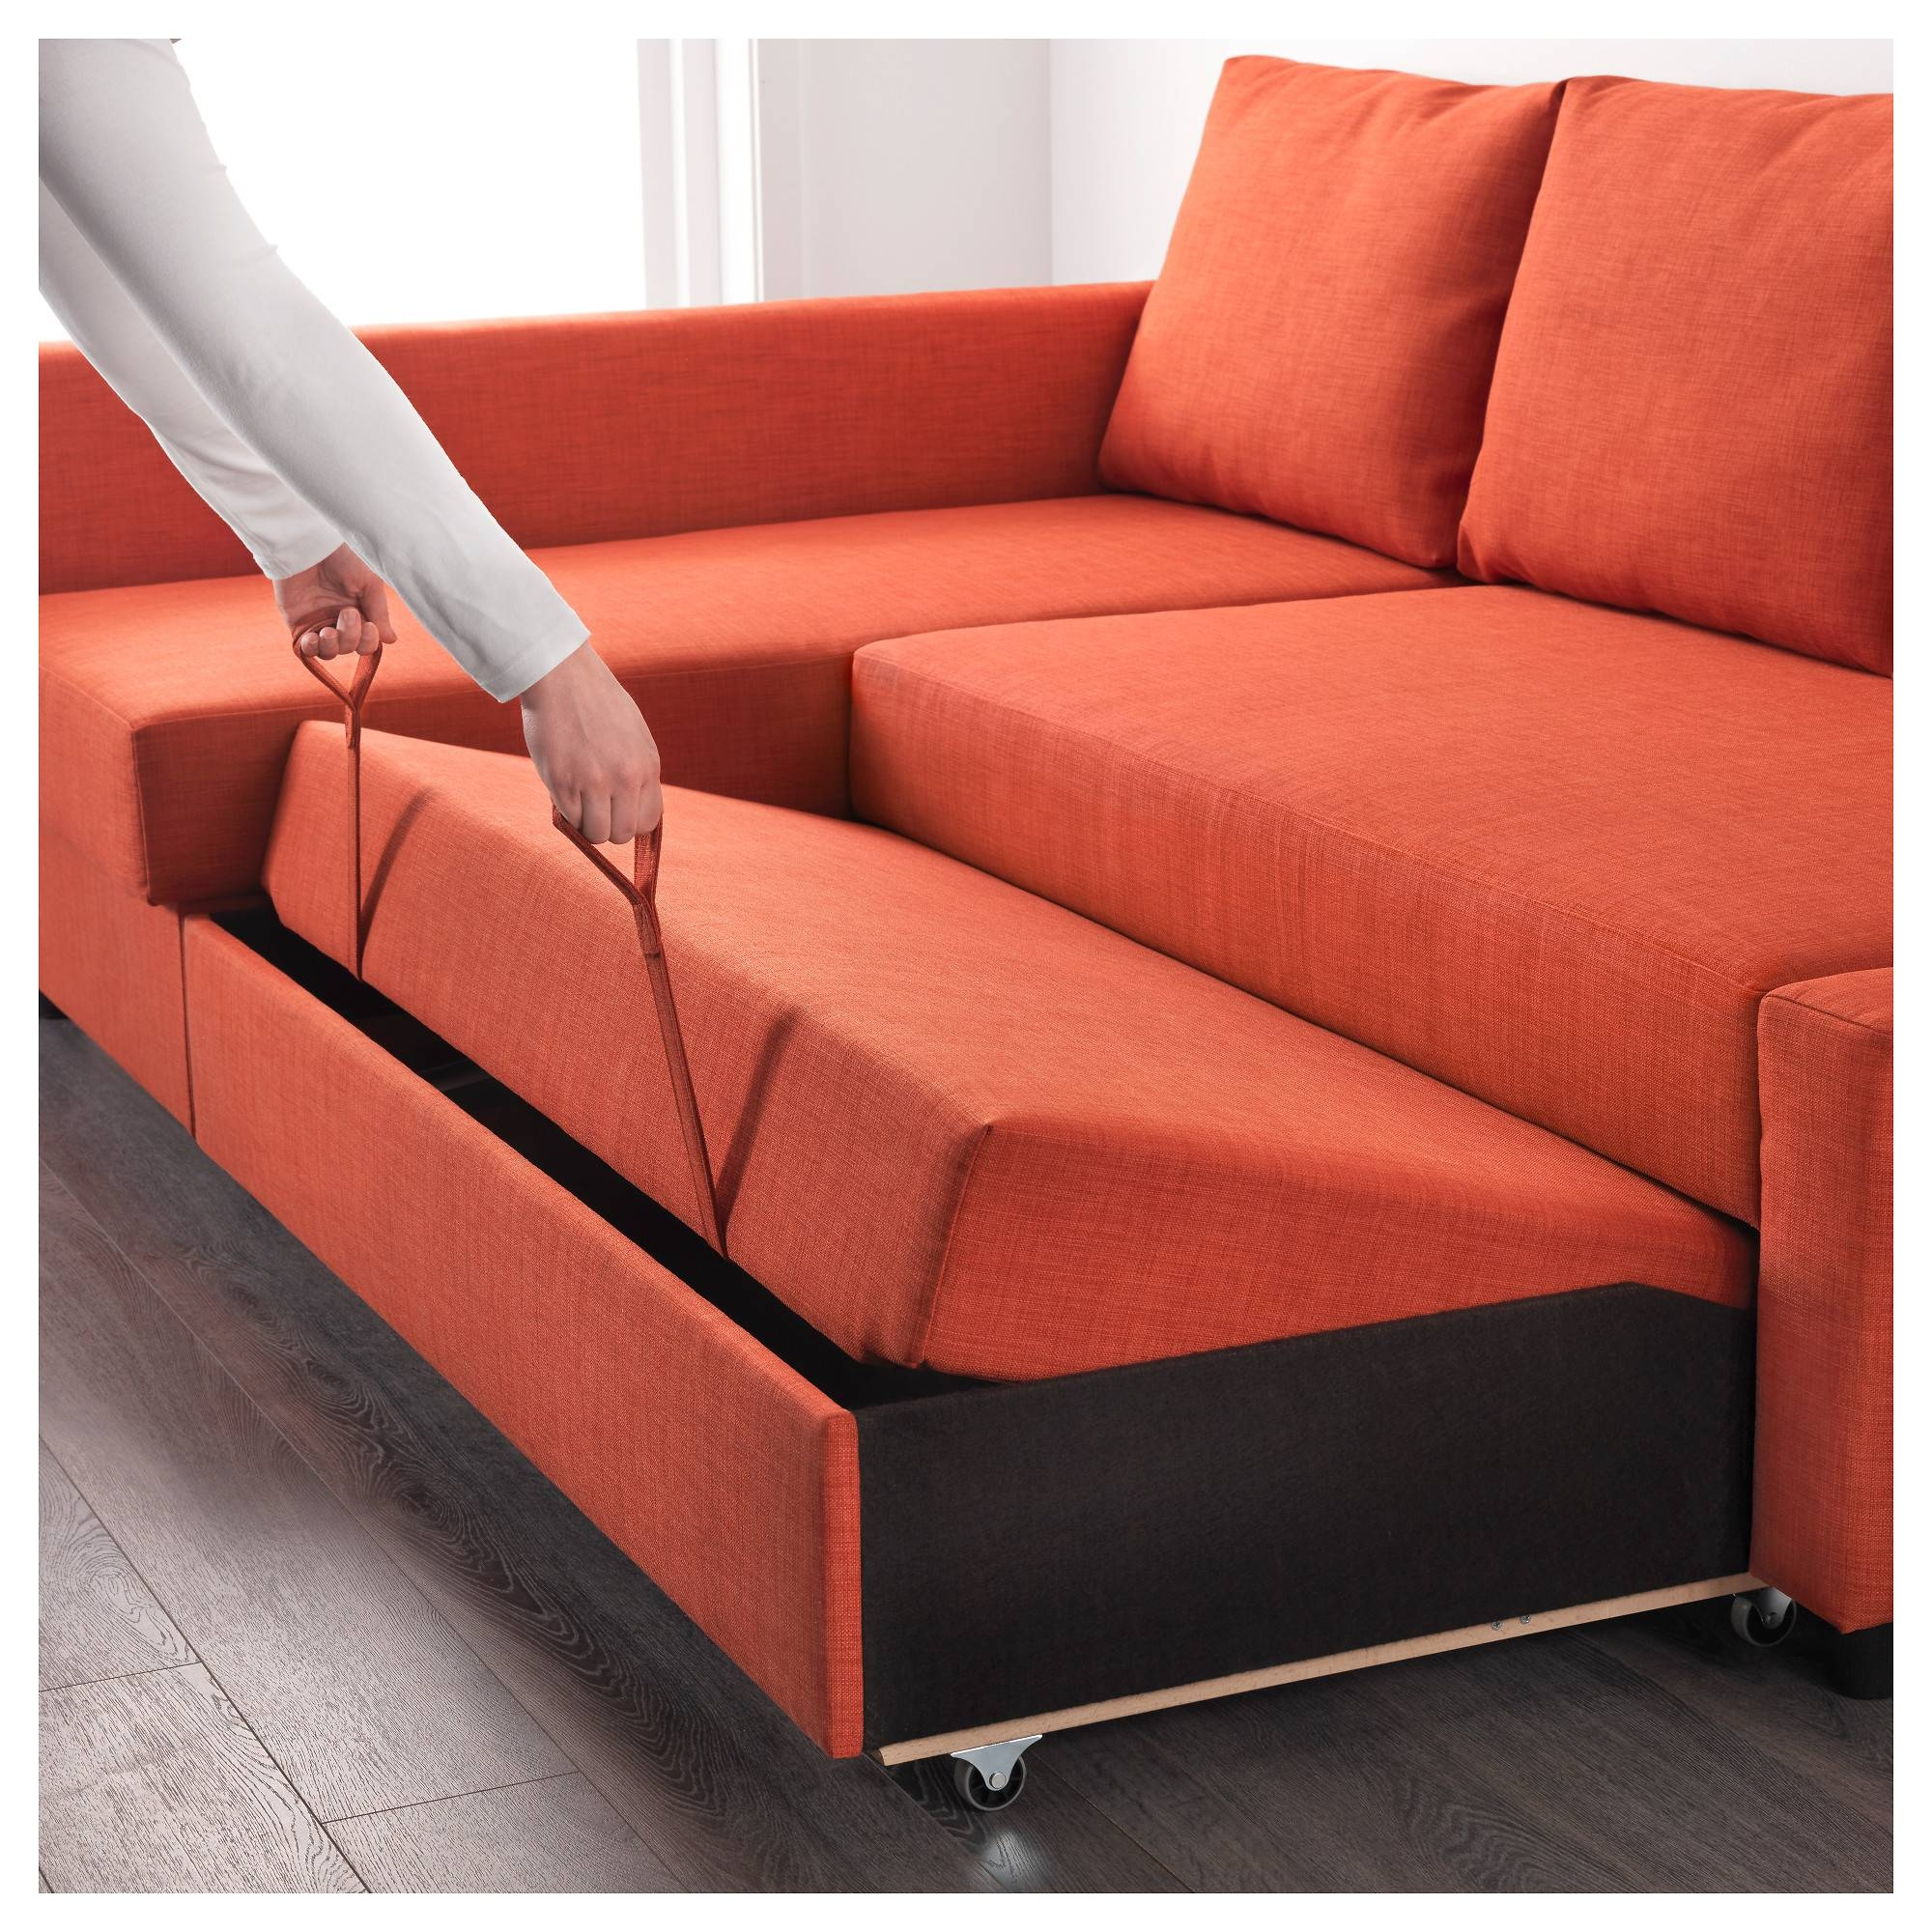 Friheten Corner Sofa-Bed With Storage Skiftebo Dark Orange - Ikea for Orange Ikea Sofas (Image 8 of 30)